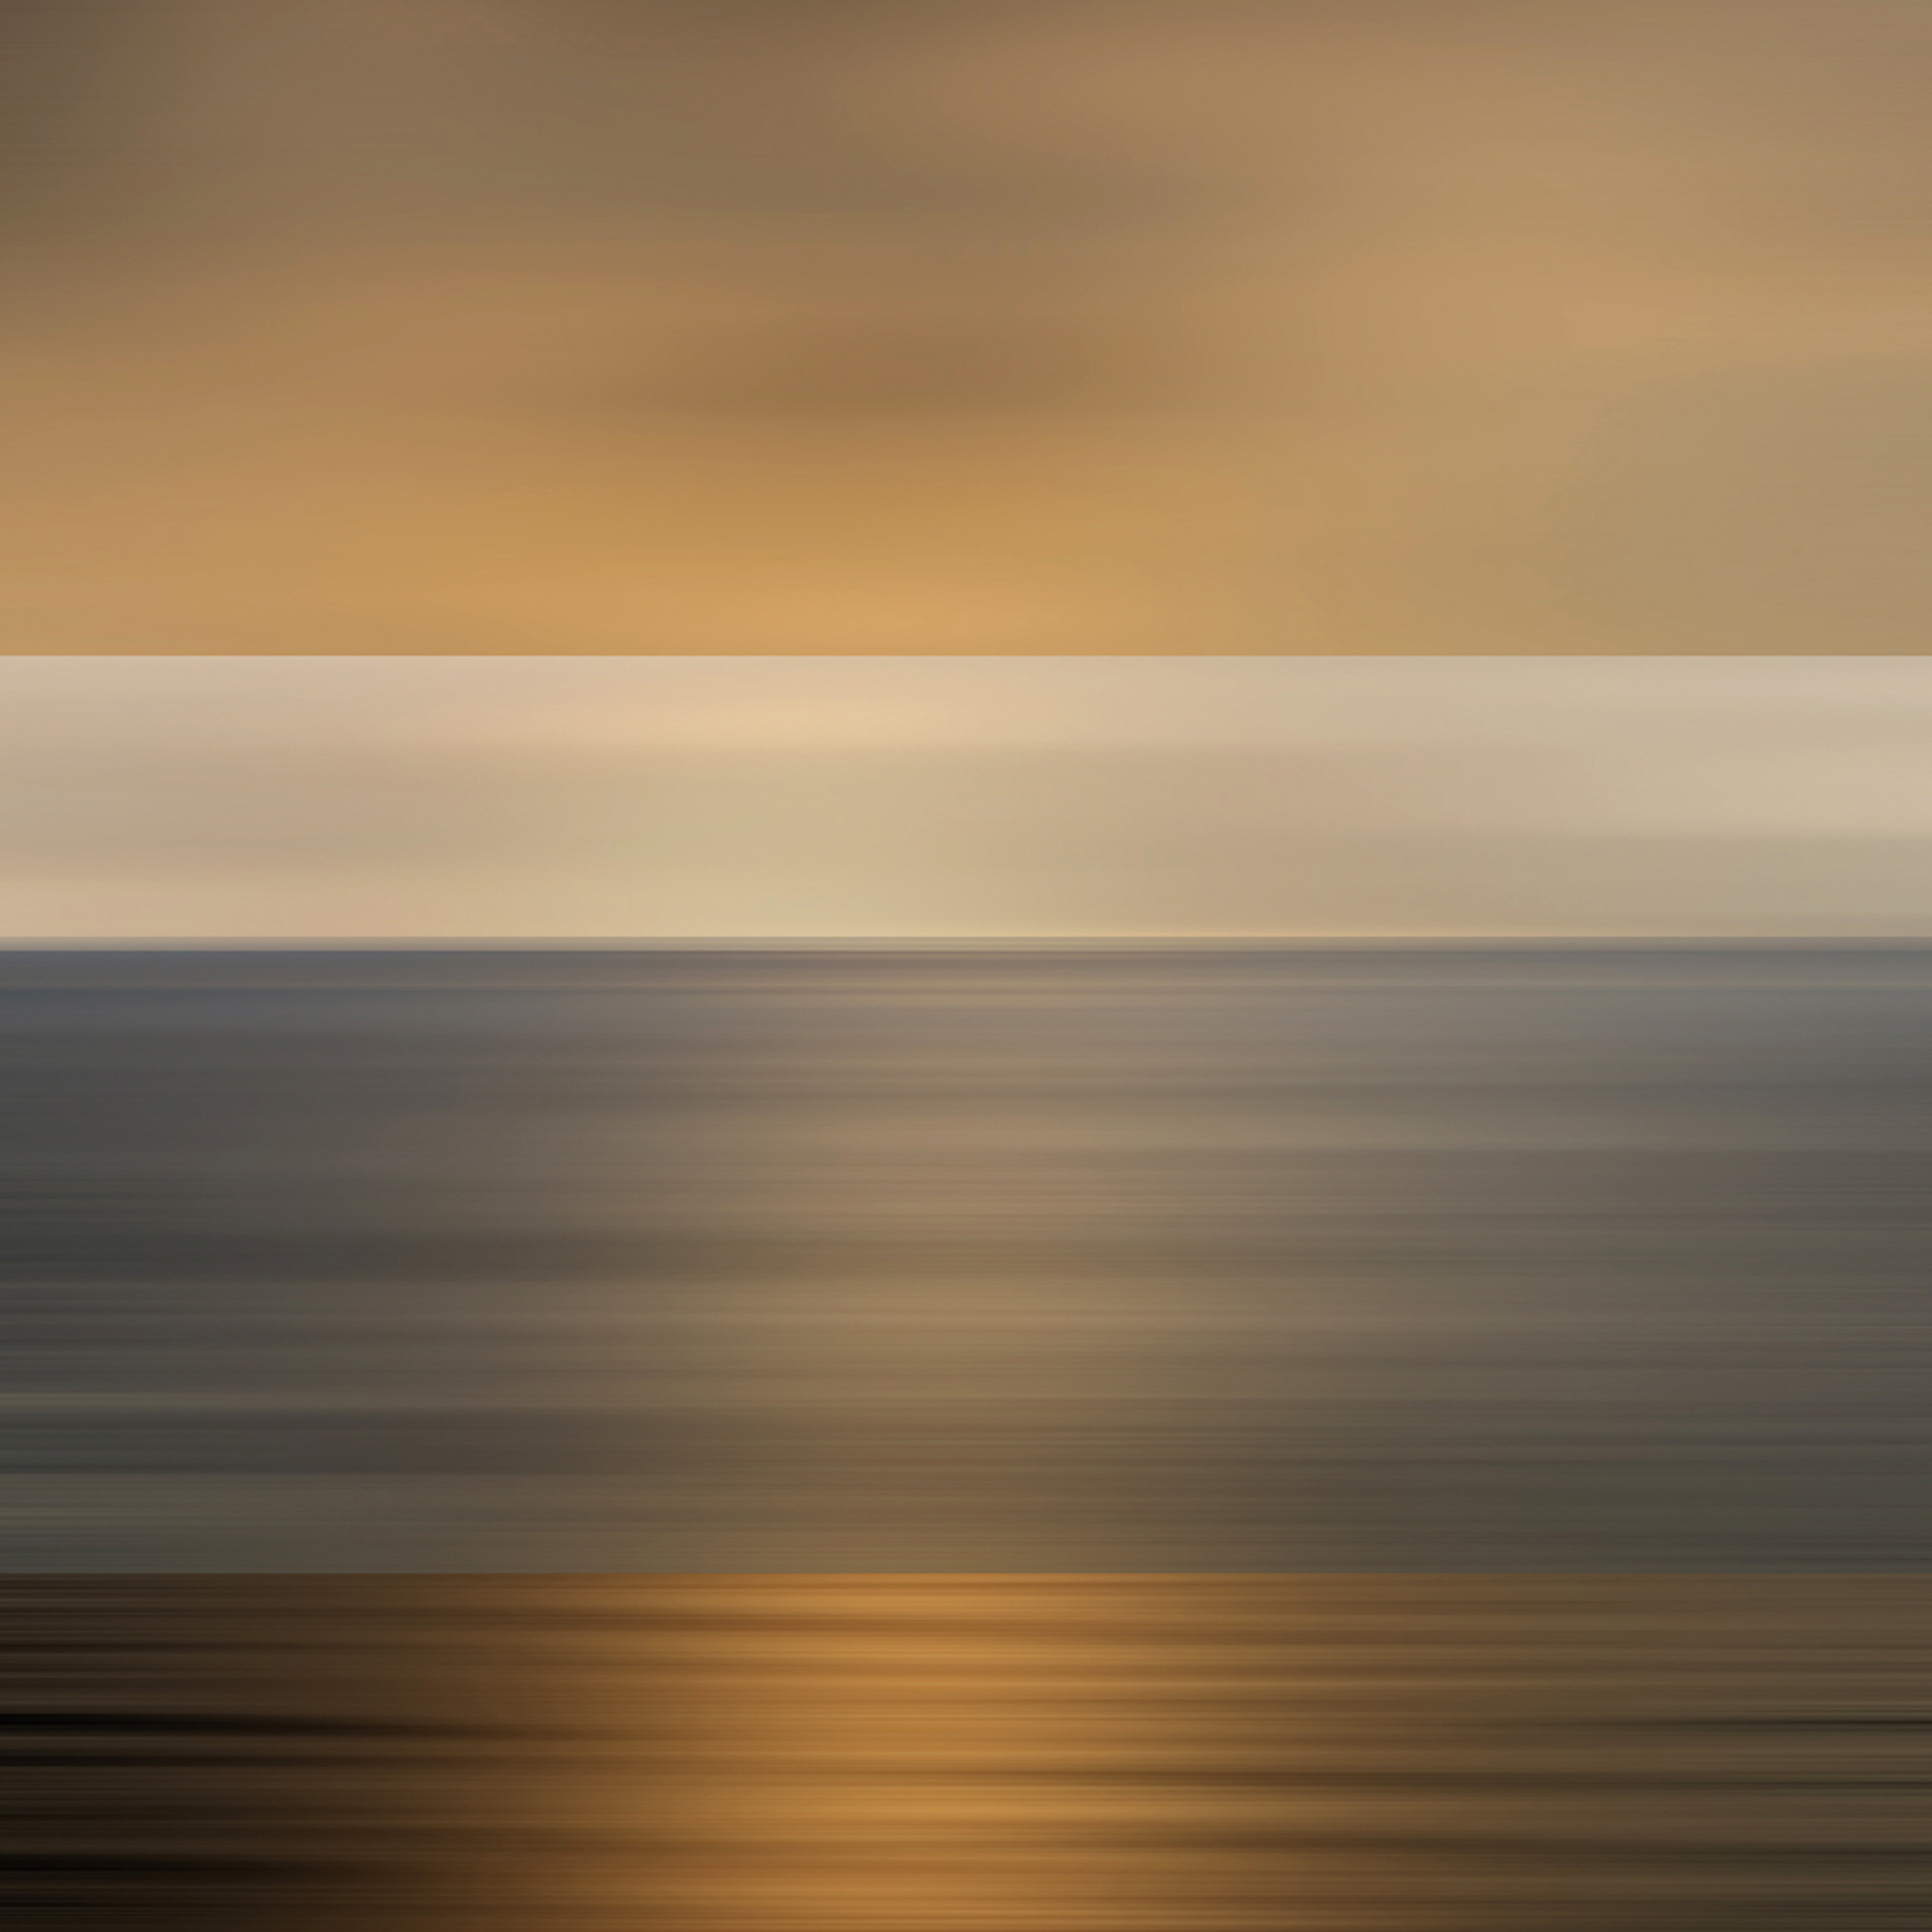 Light and Sea Fusions, 2018, photograph on plexiglass, 40 x 40 in, edition of 10, $7,500 (other sizes available, priced accordingly)